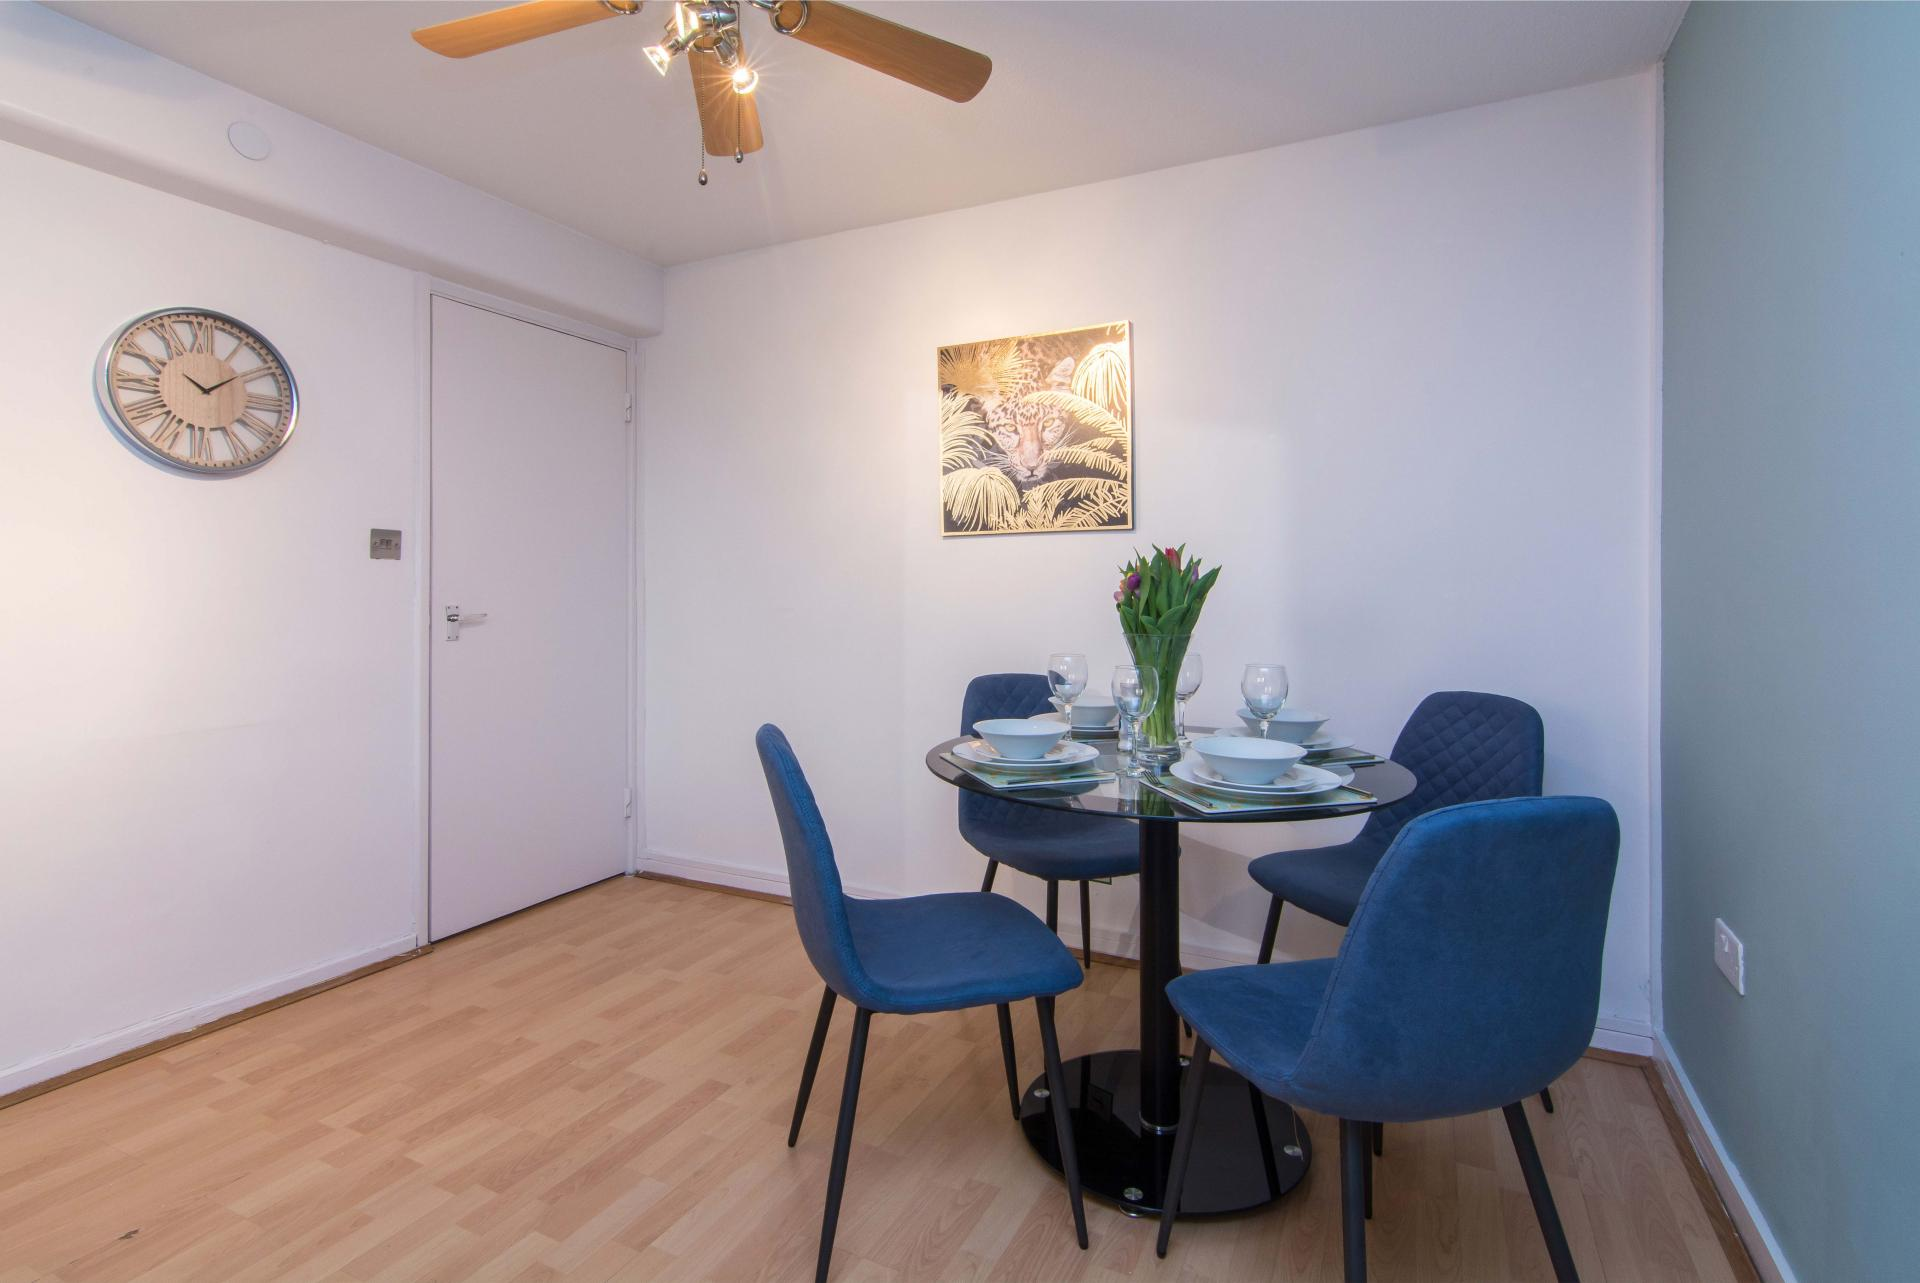 Dining area at Victoria Centre Apartment, Centre, Nottingham - Citybase Apartments